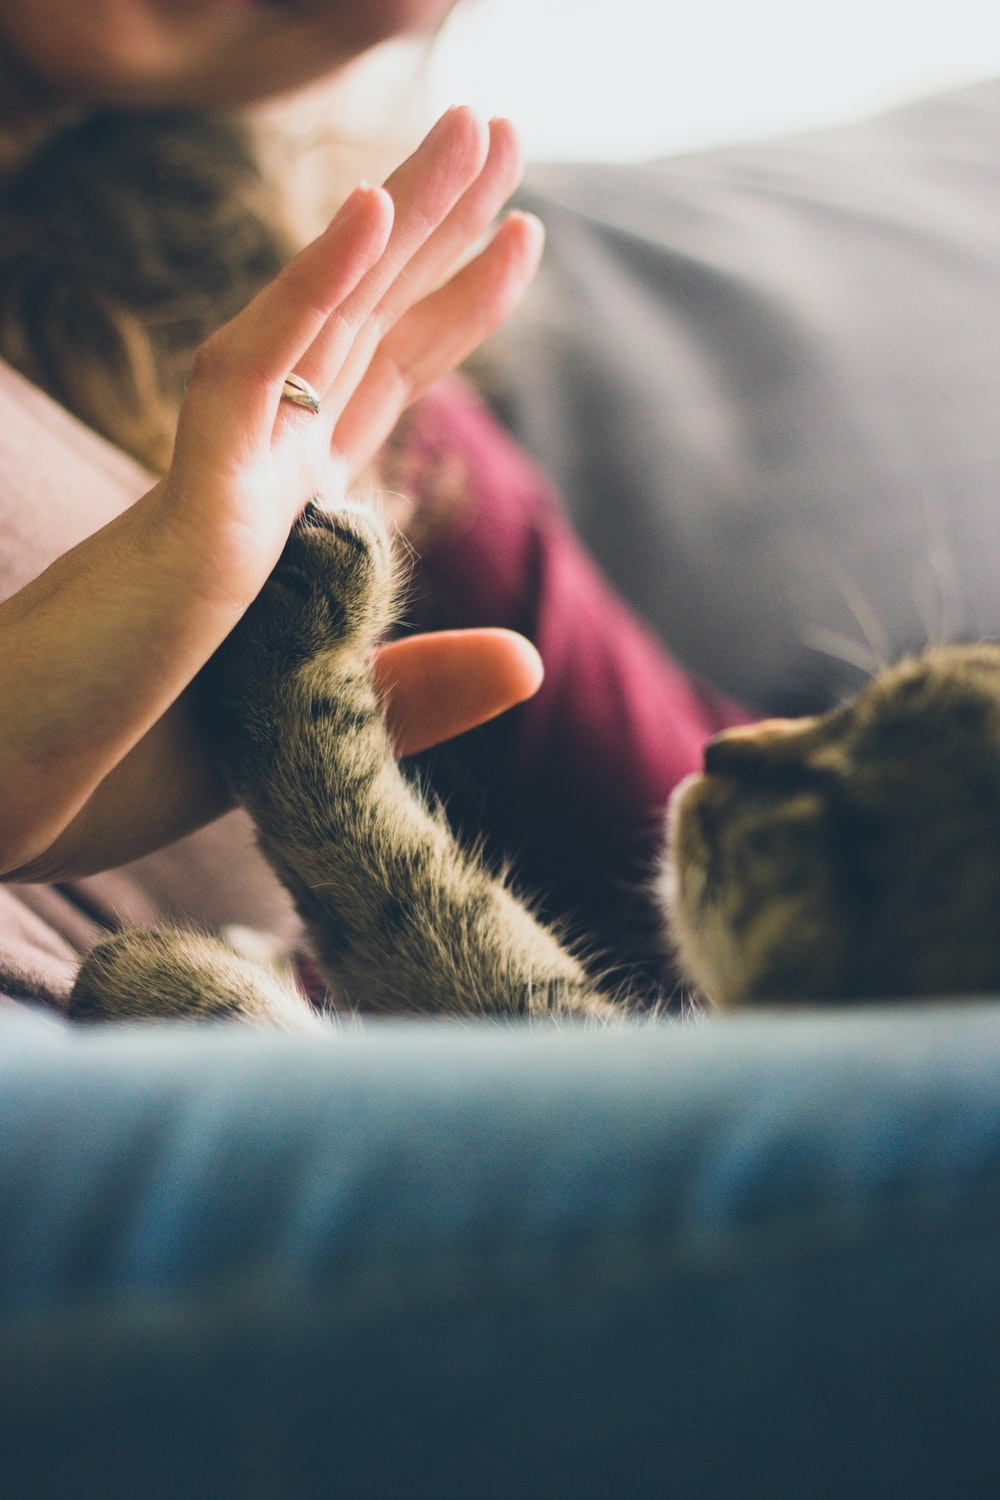 tabby cat touching person's palm